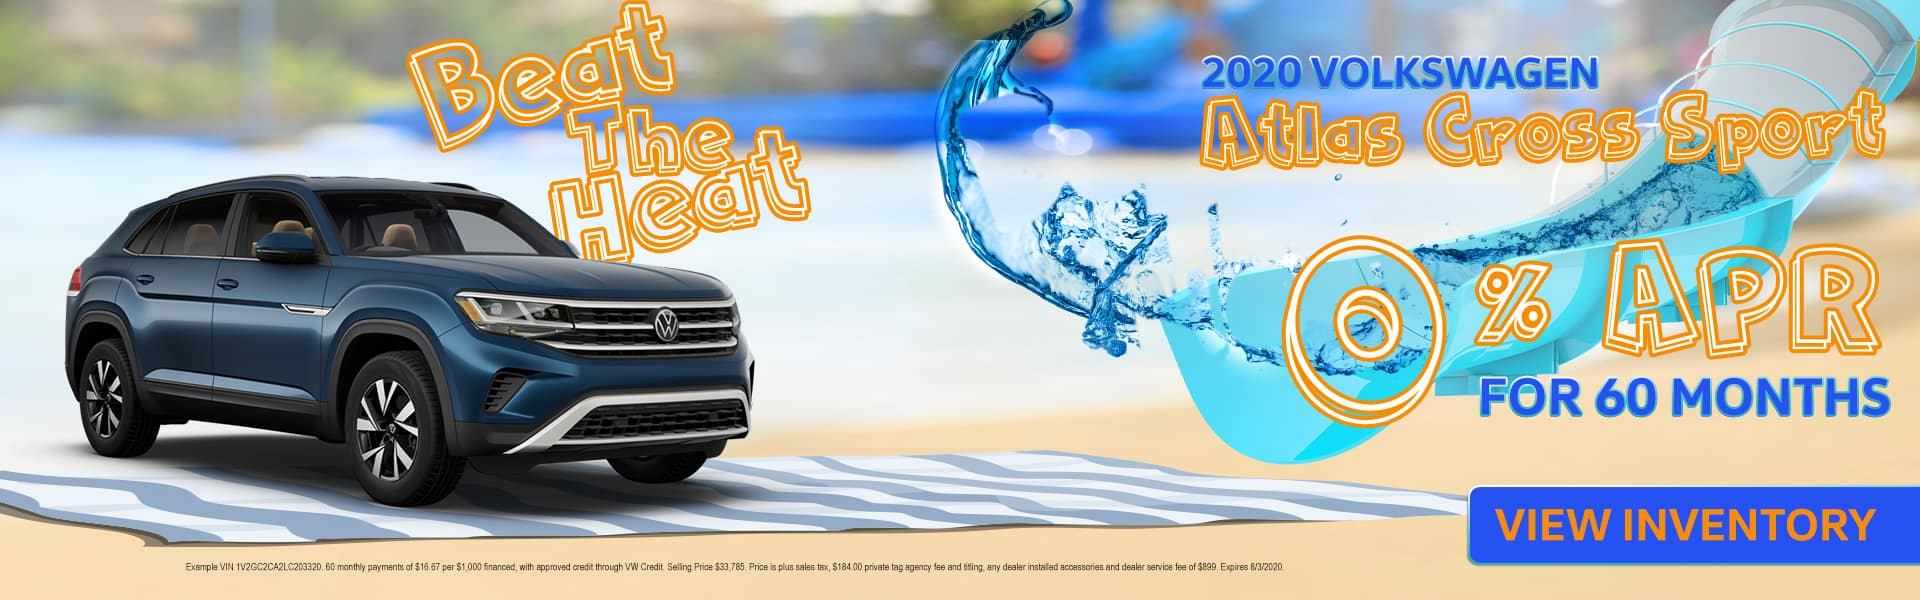 Beat The Heat | 2020 Volkswagen Atlas Cross Sport | 0% APR For 60 Months